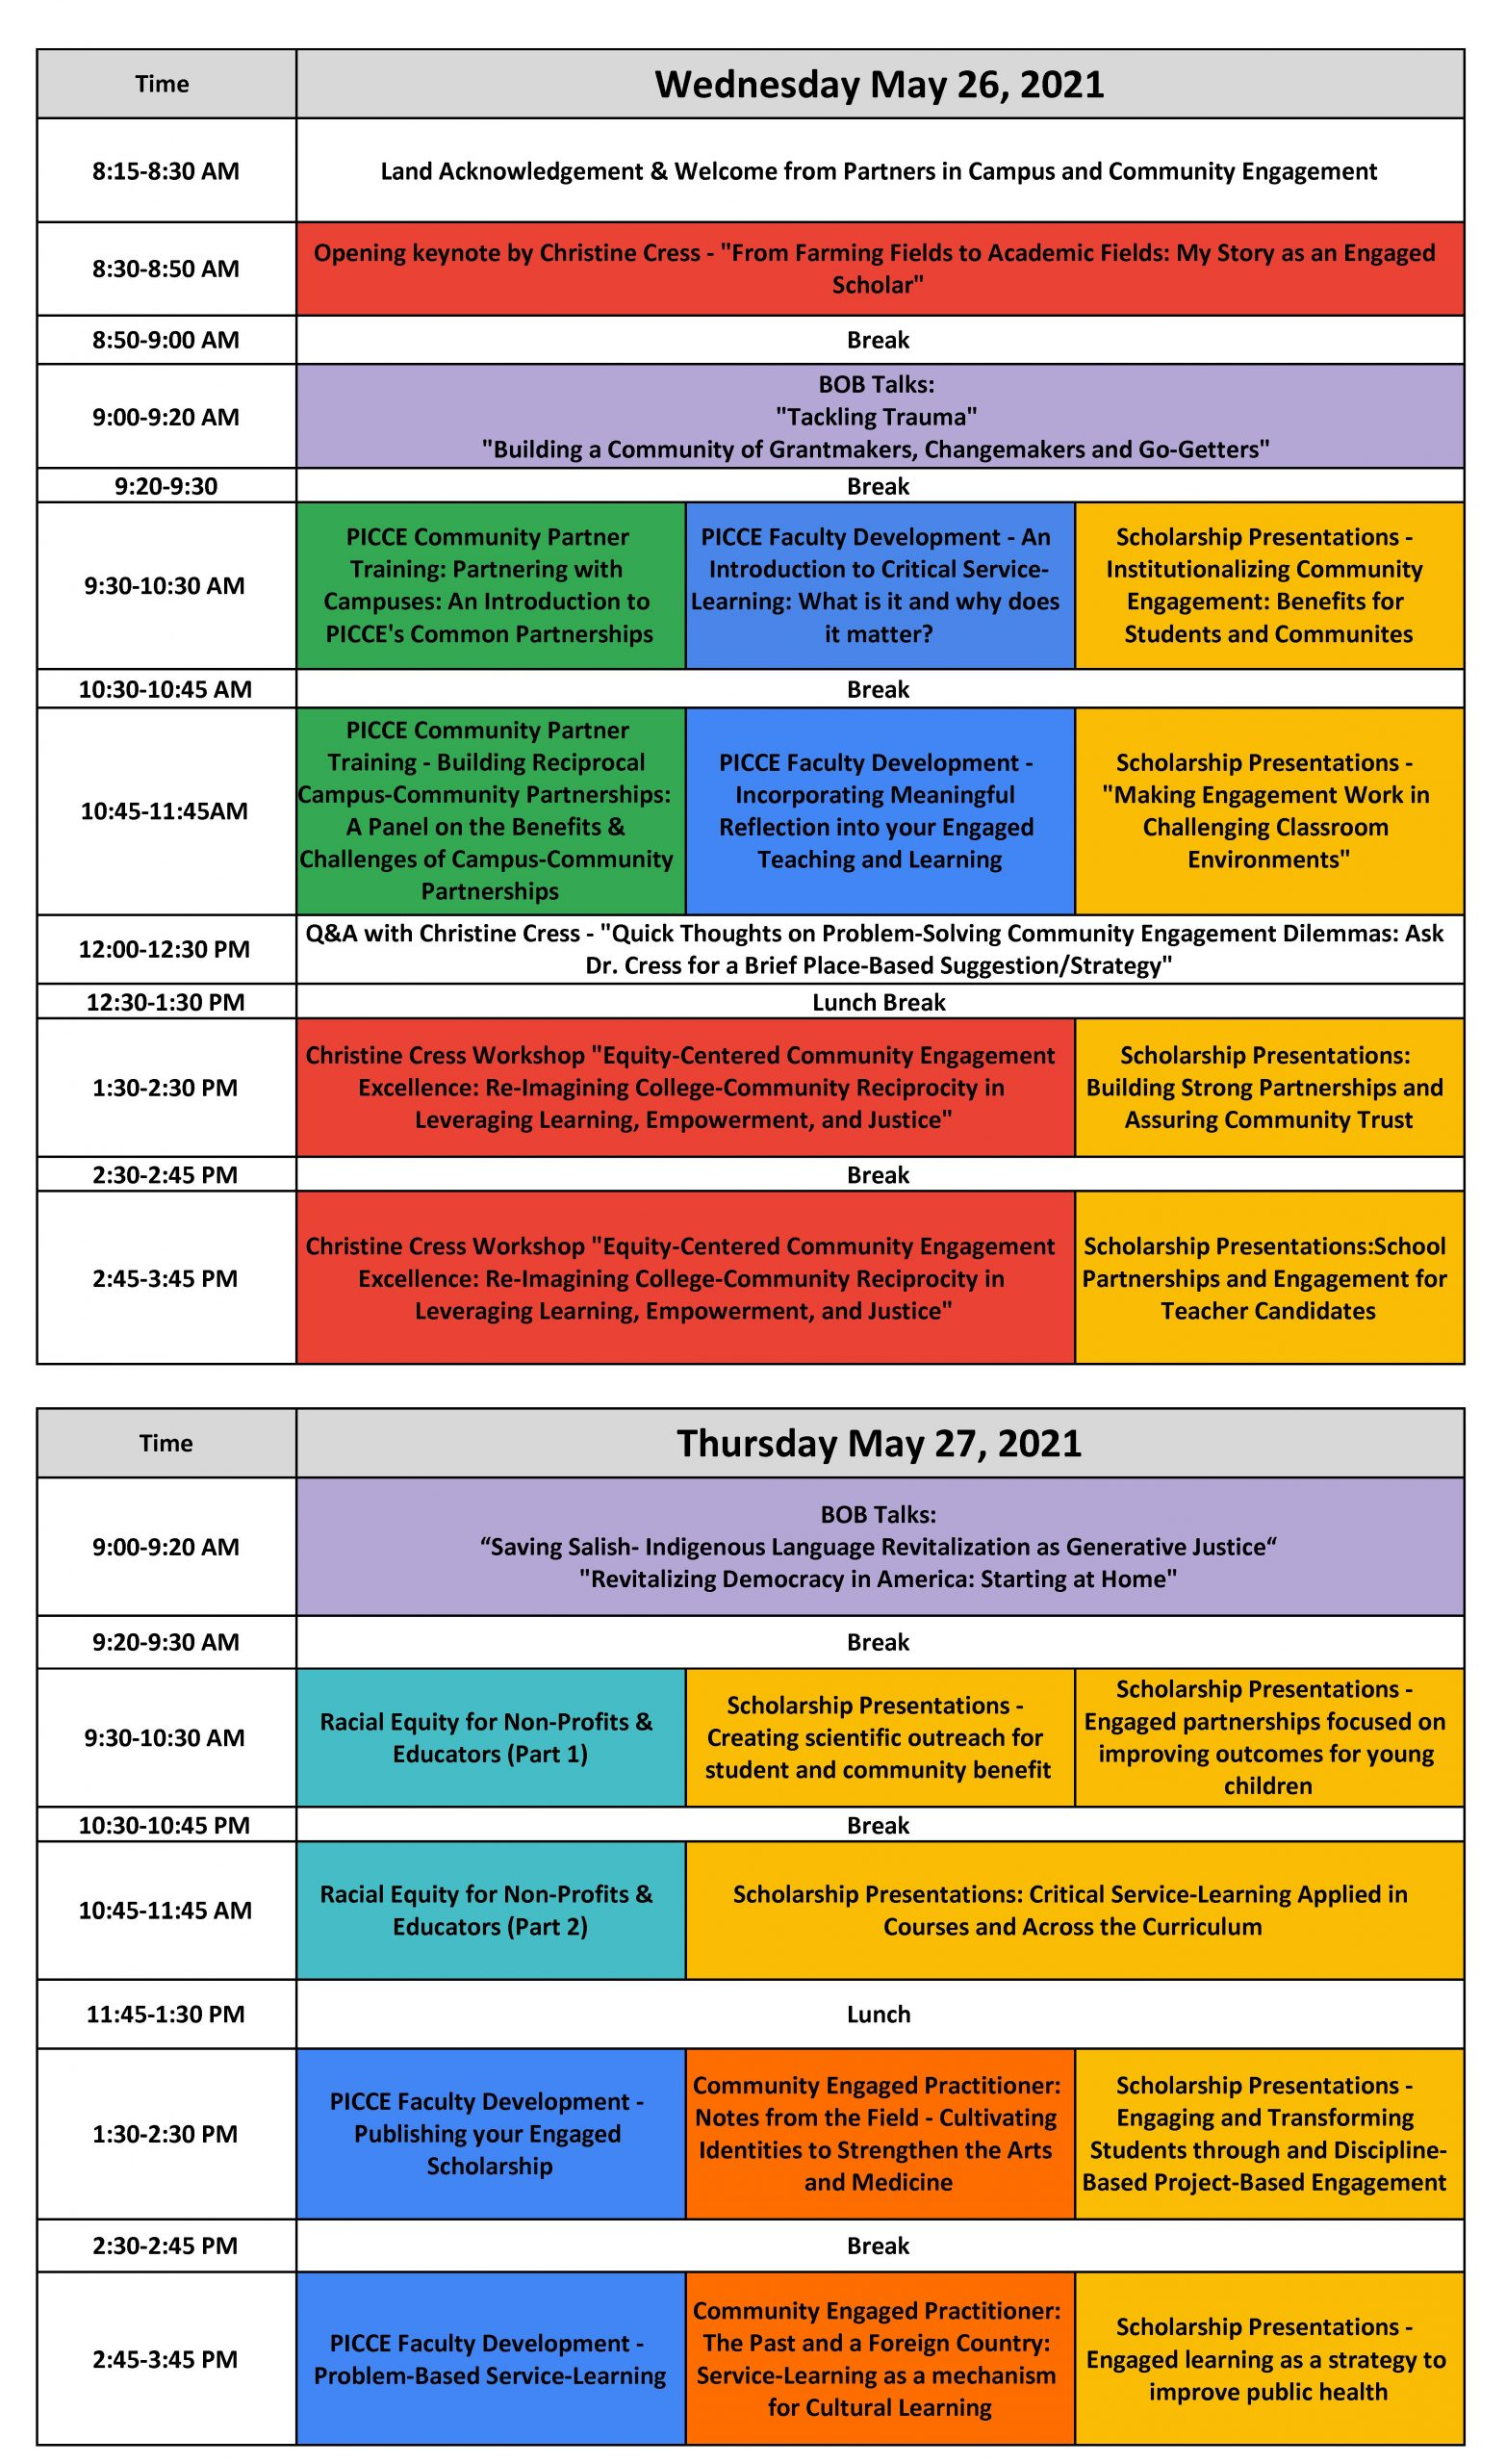 Draft of CEI 2021 Program at a Glance.xlsx - Actual Schedule at a Glance (3)